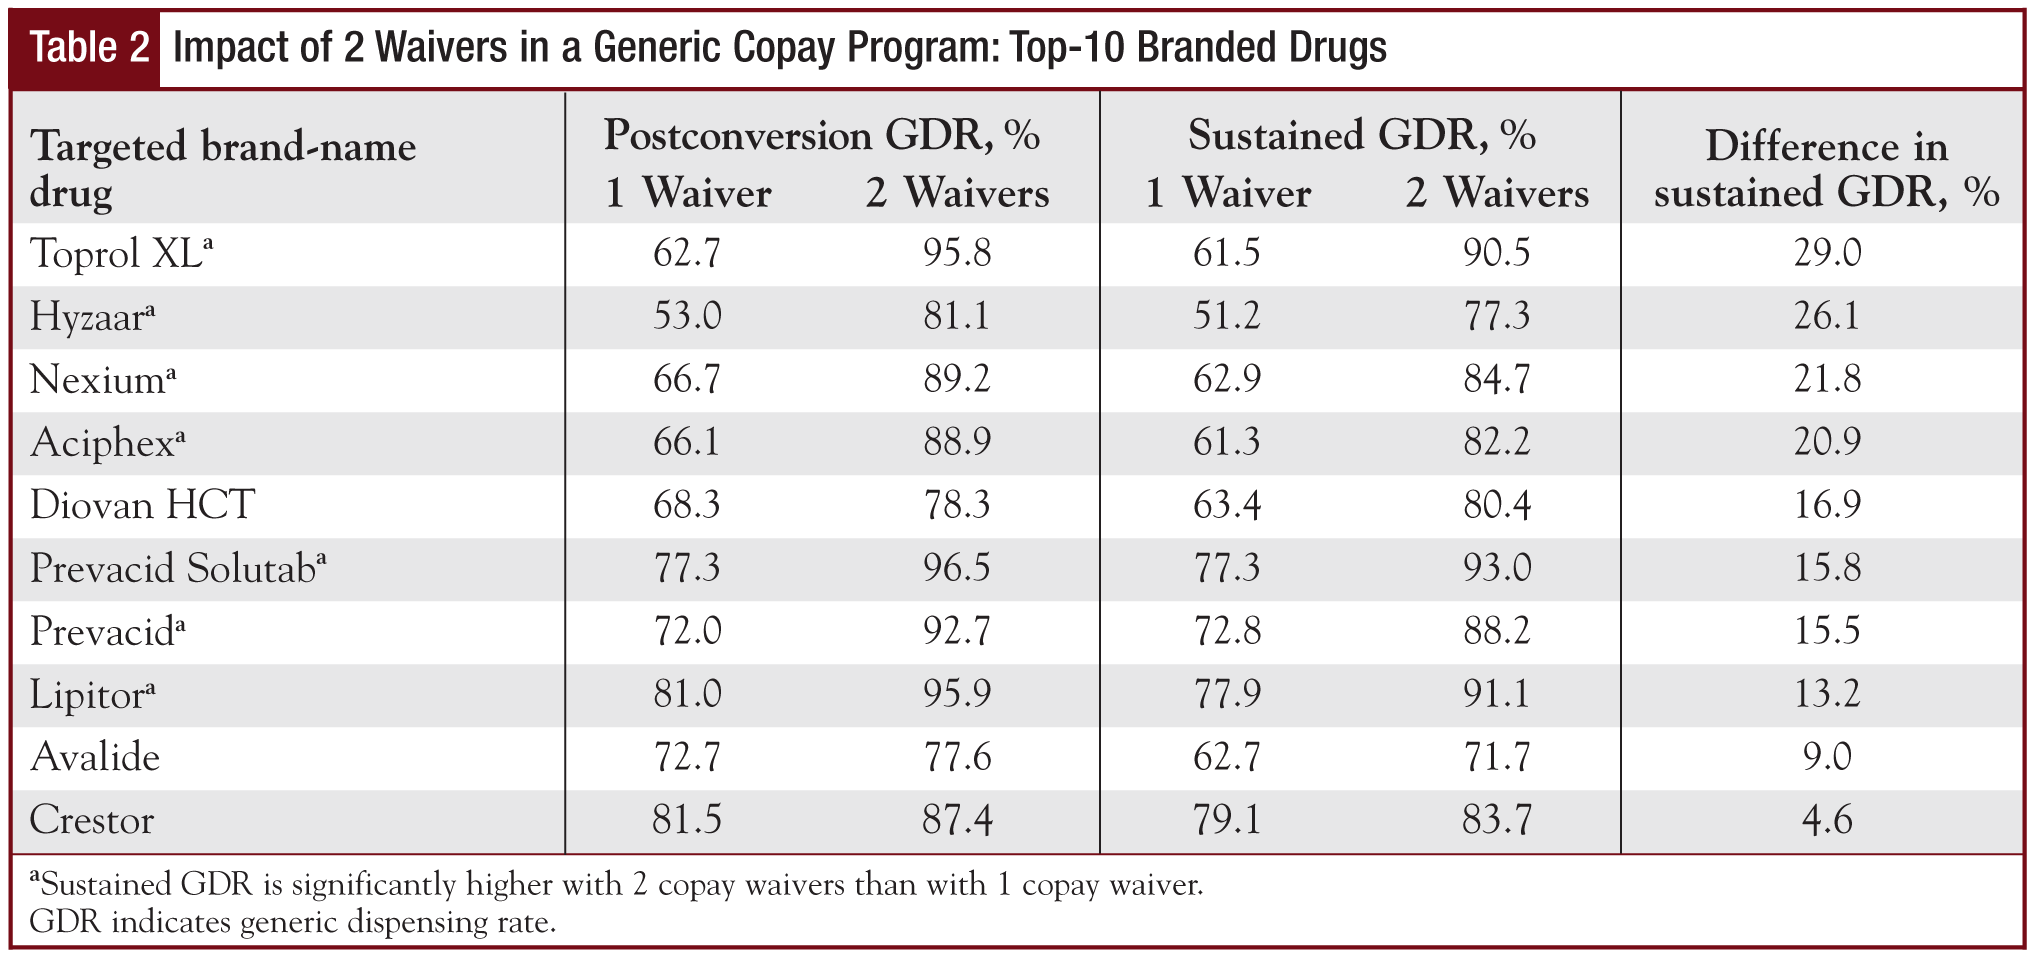 Impact of 2 Waivers in a Generic Copay Program: Top-10 Branded Drugs